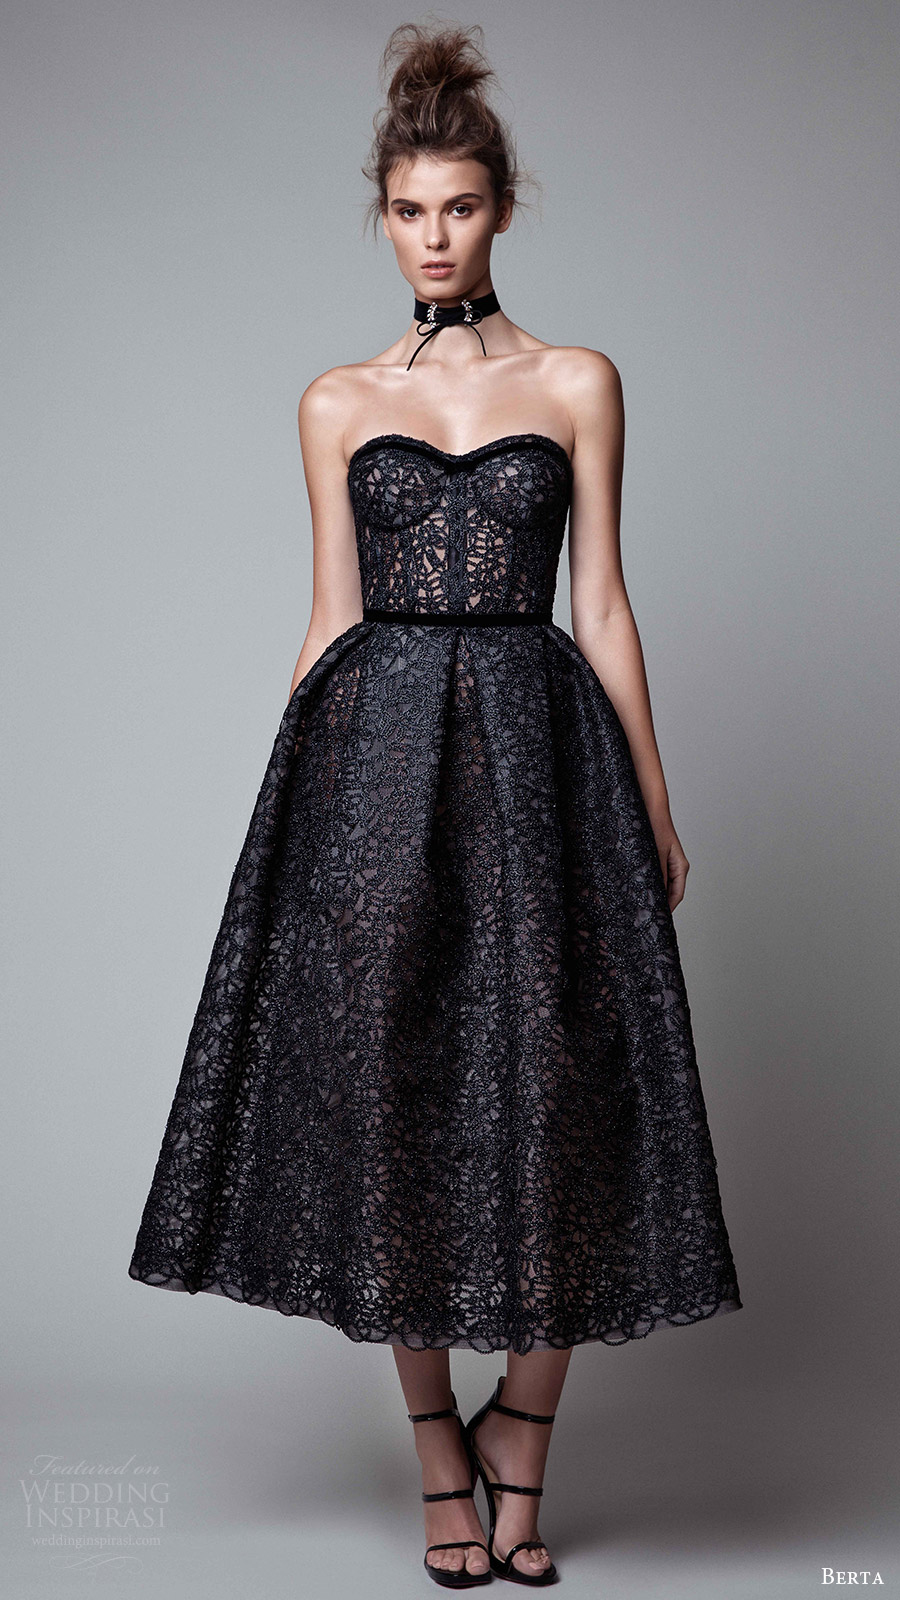 berta rtw fall 2017 (17 33) strapless sweetheart tea length ball gown evening dress mv black